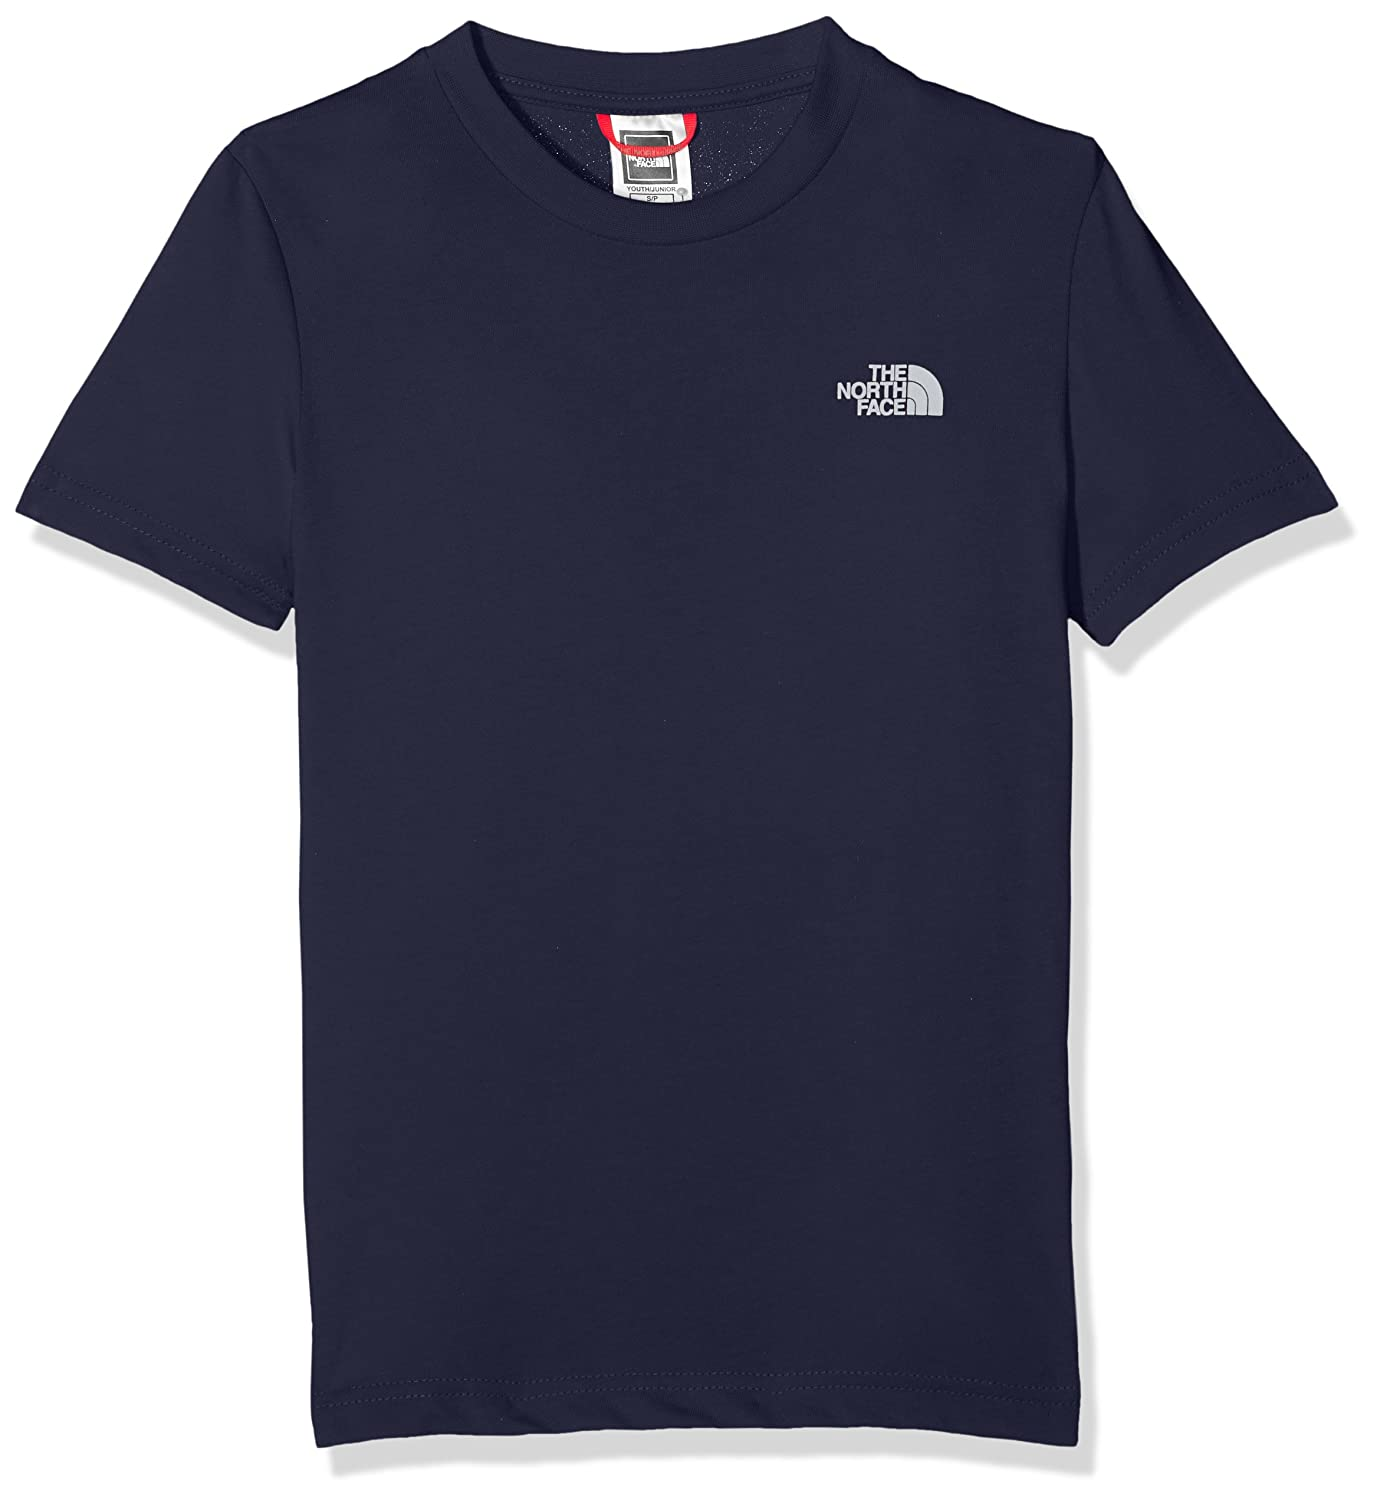 THE NORTH FACE t92wan, T-Shirt Child, baby, T92wan